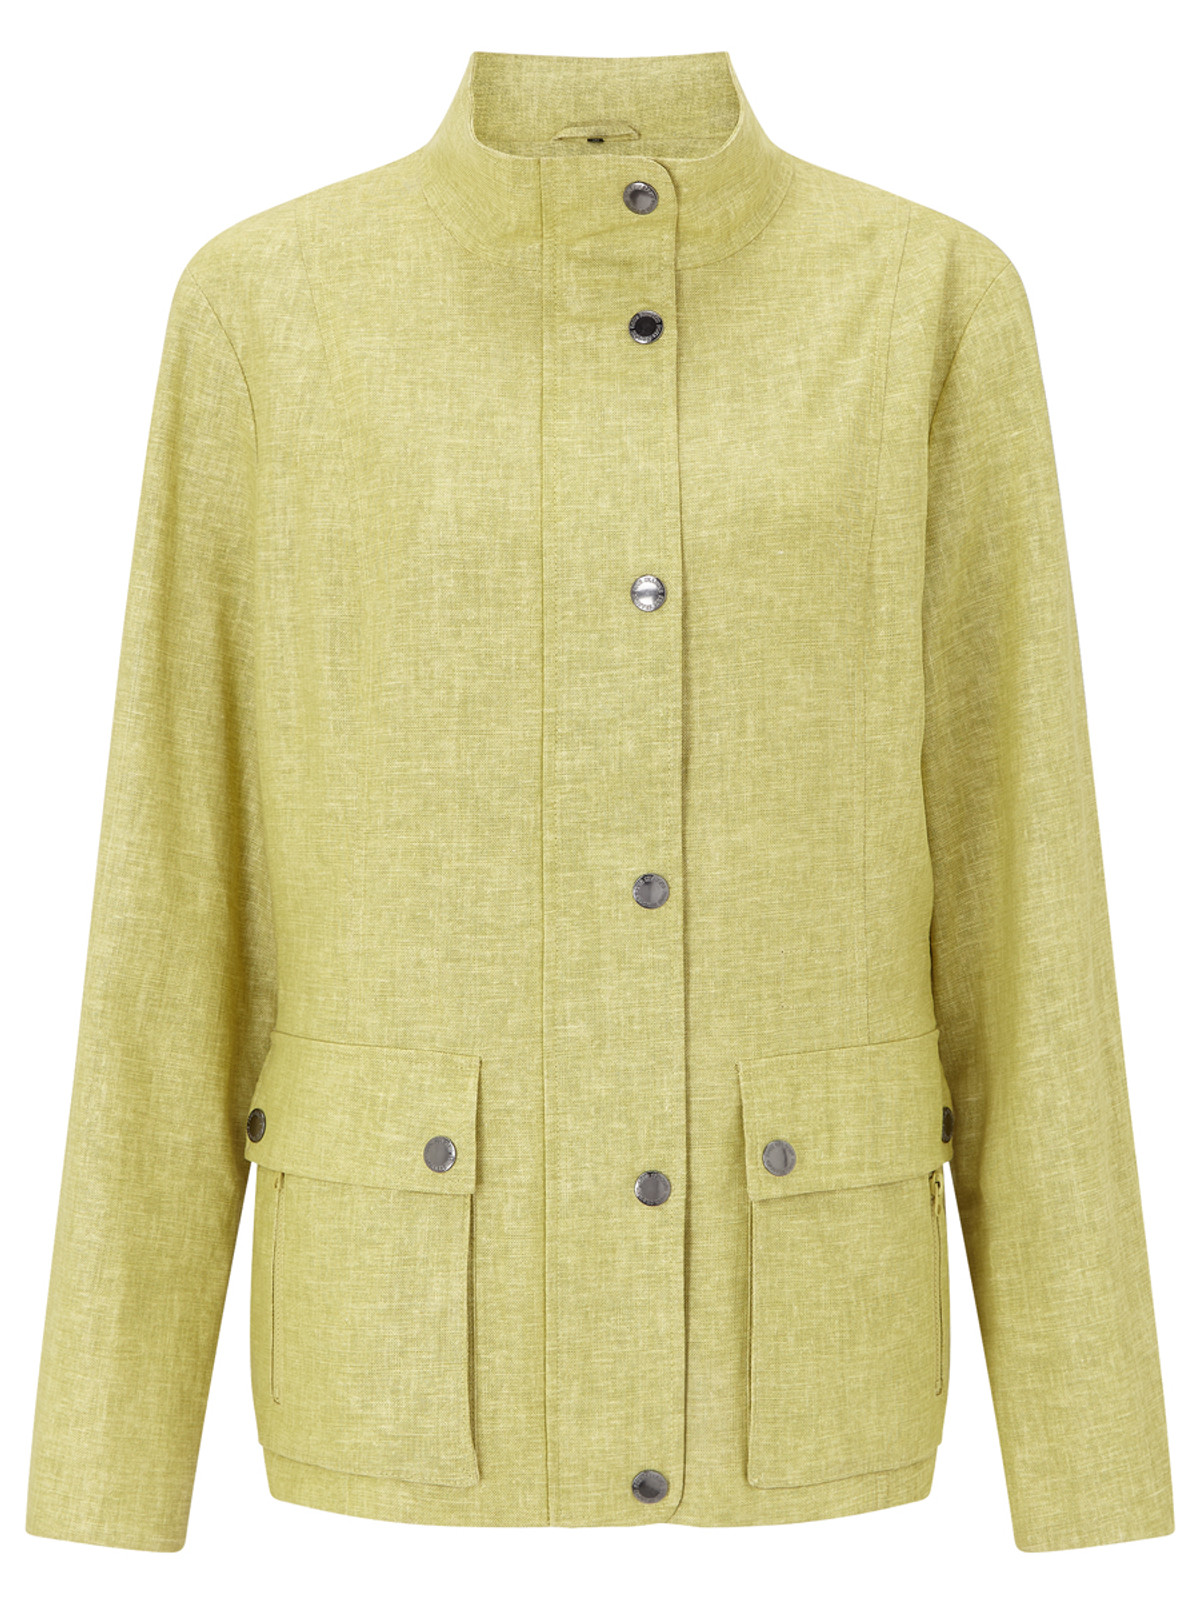 BRIMDOWN – Linen Look Safari Jacket, Citrus